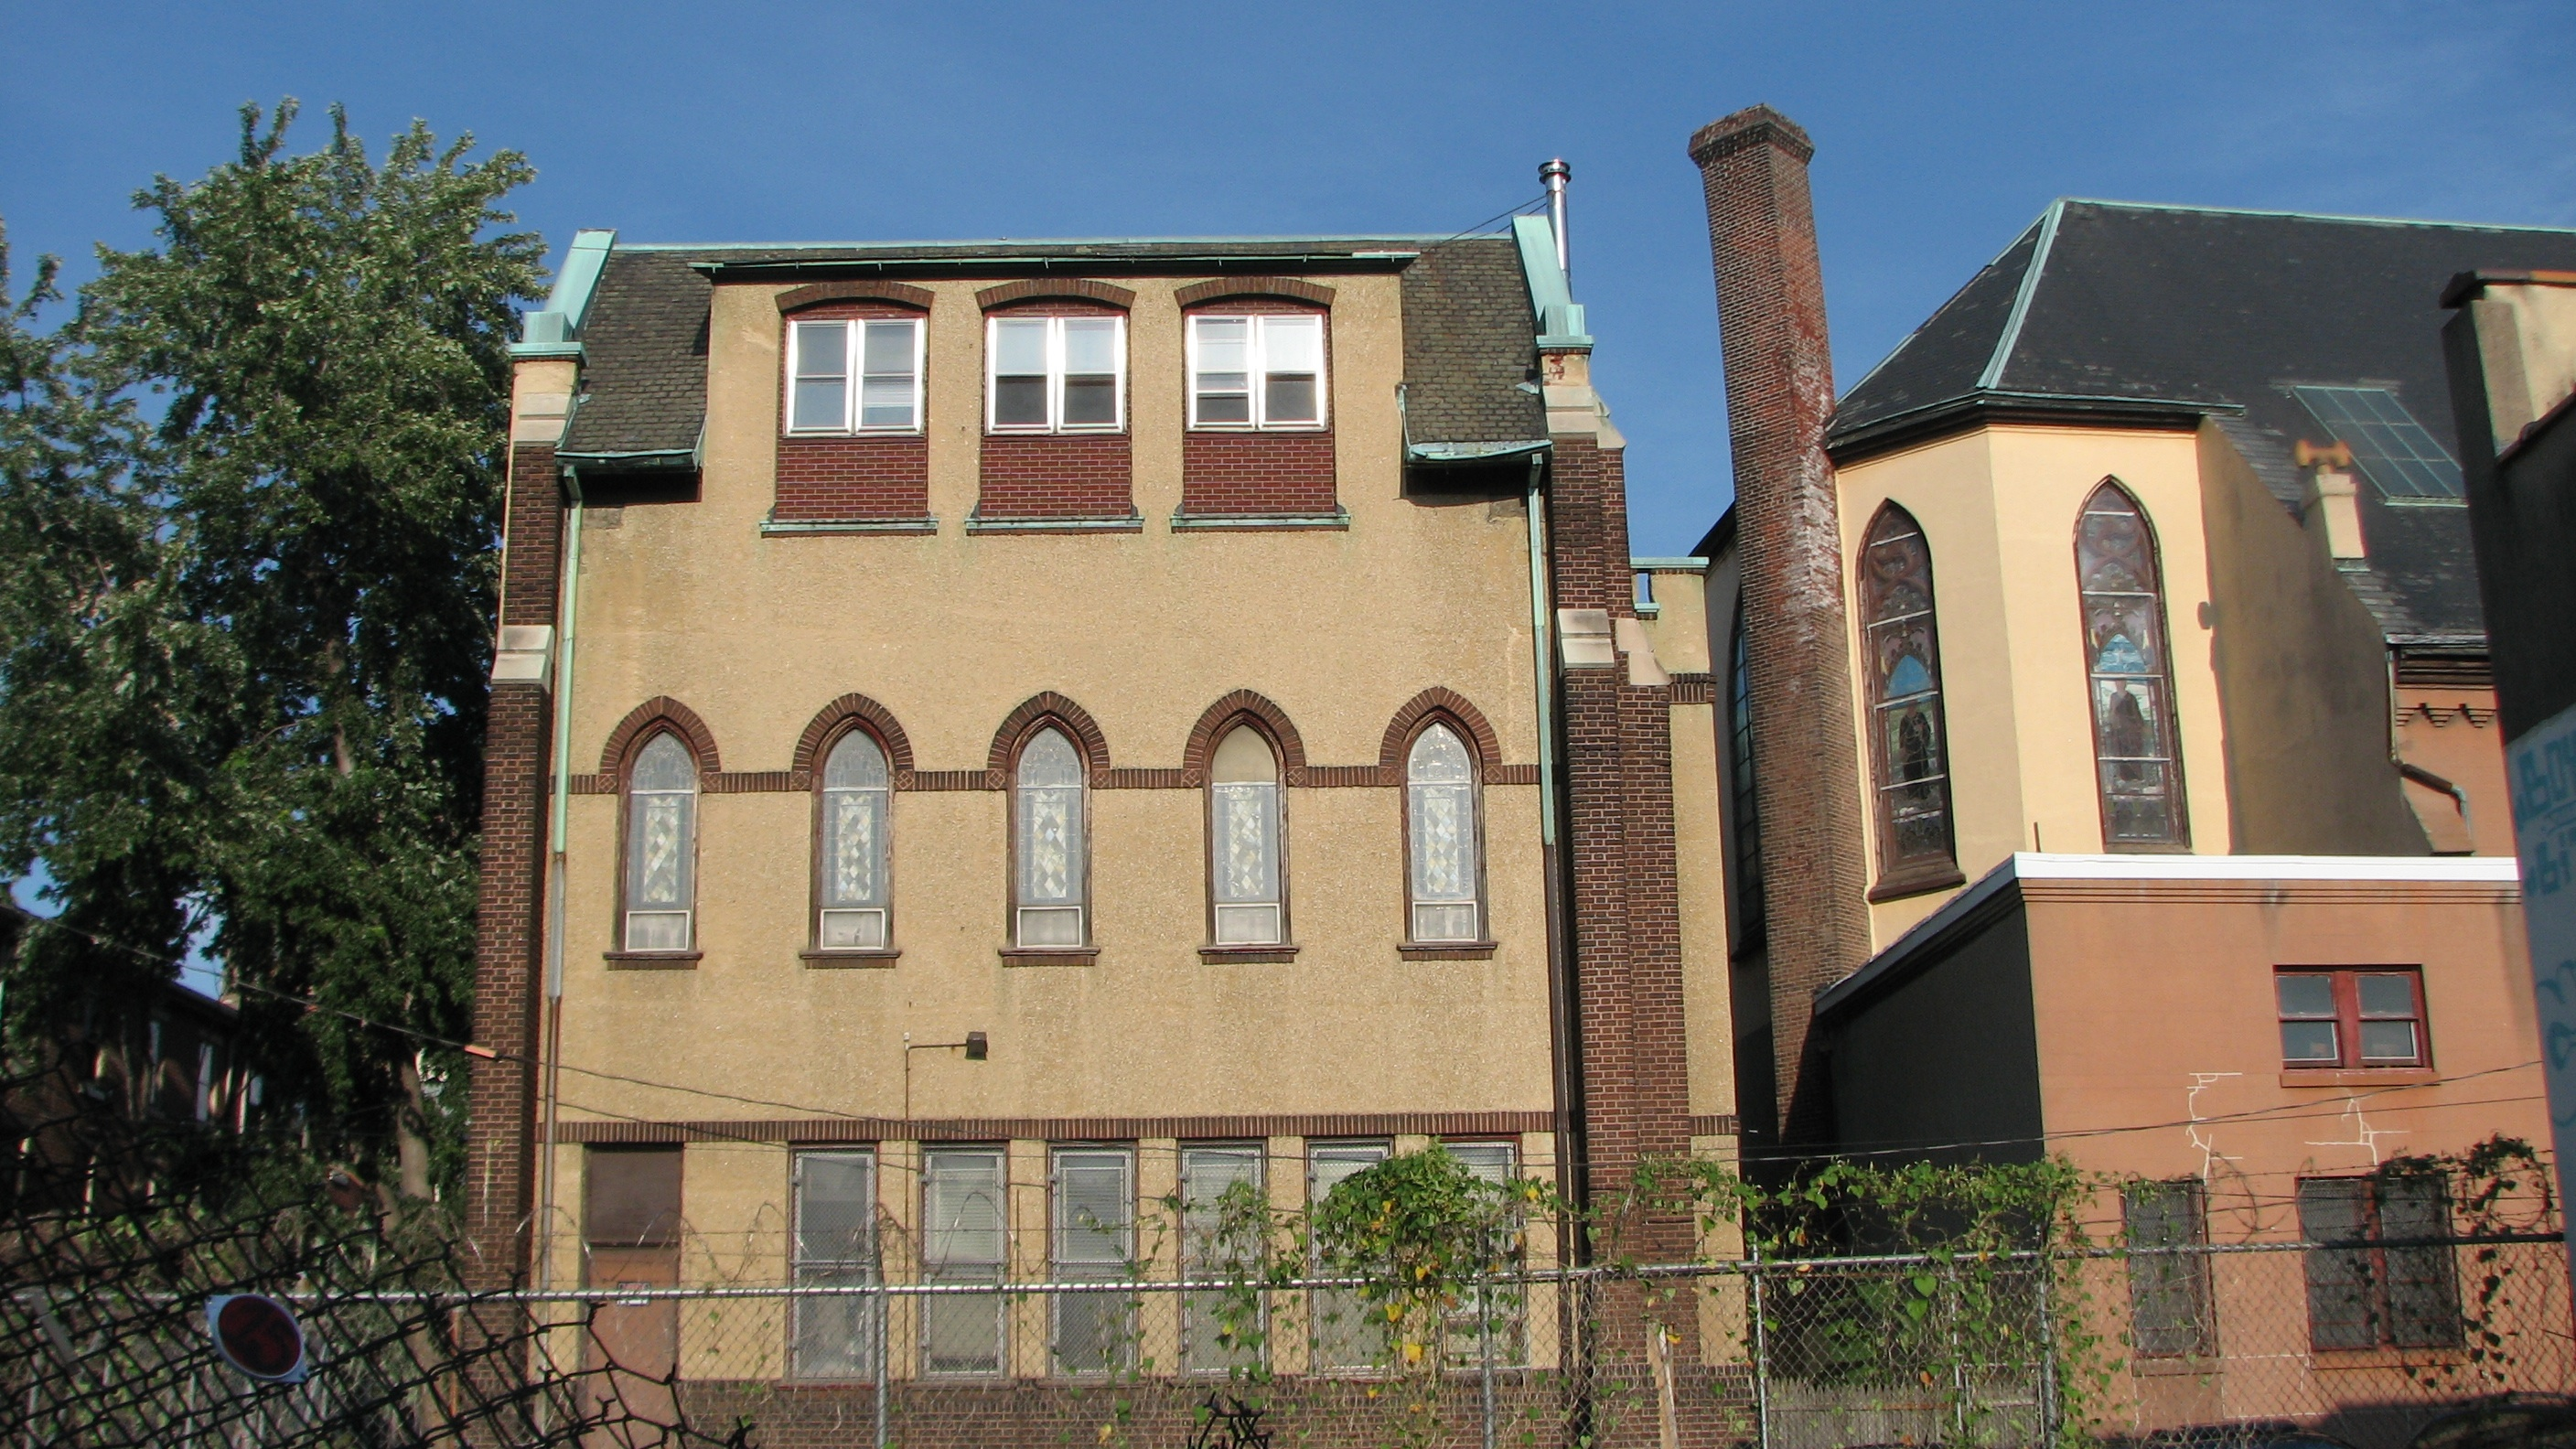 The former convent sits behind the church on Brandywine Street.